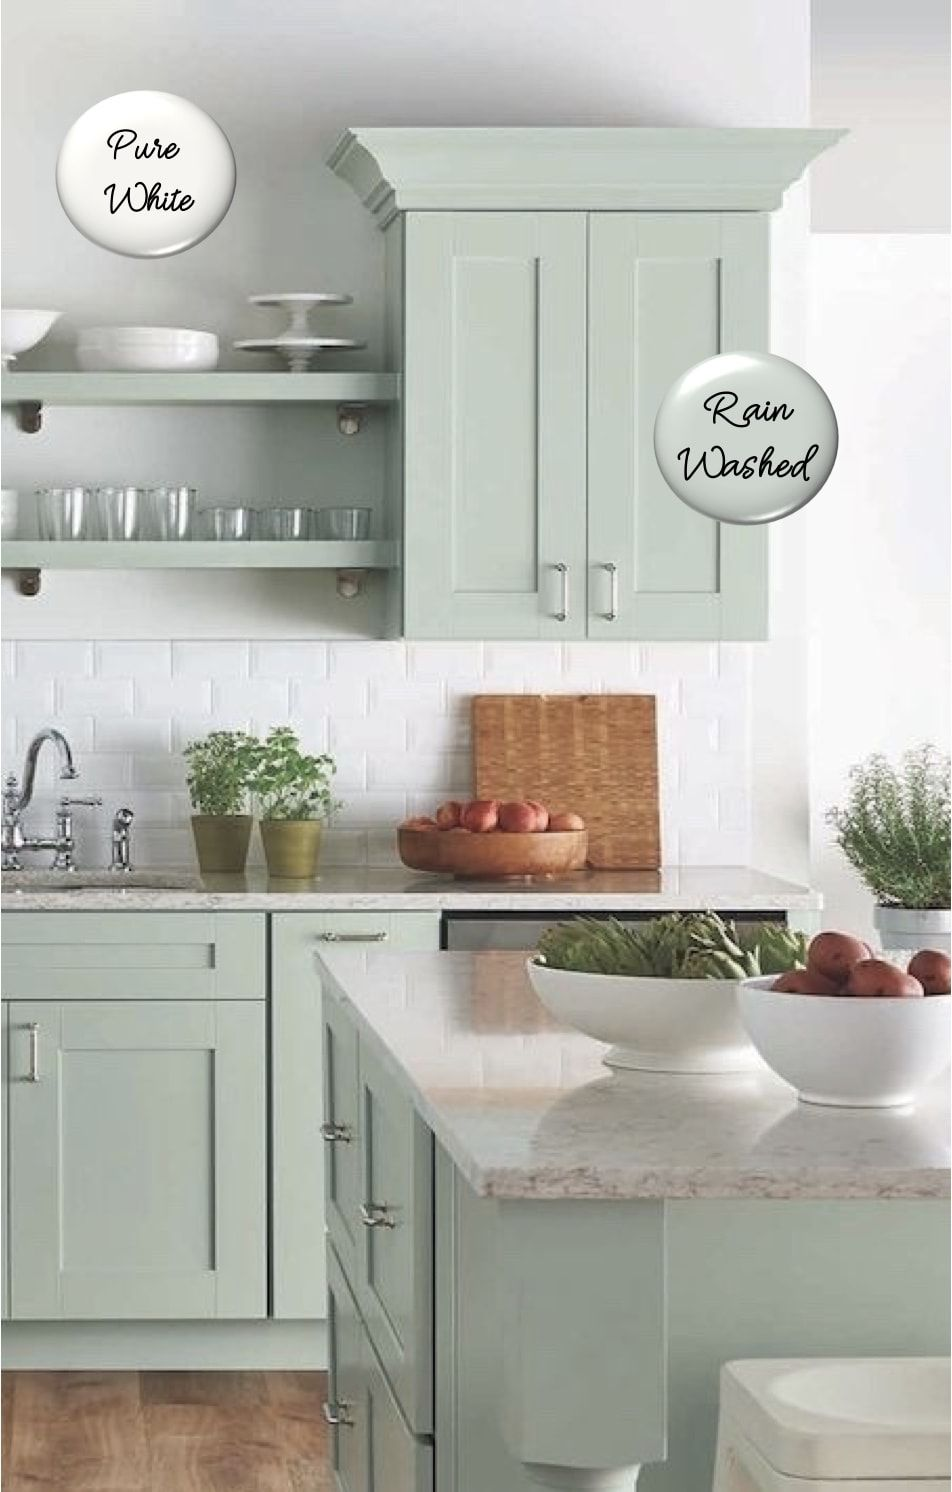 20 Cabinet Paint Color Combos For The Kitchen Kitchen Cabinets Color Combination Green Kitchen Cabinets Kitchen Cabinet Colors